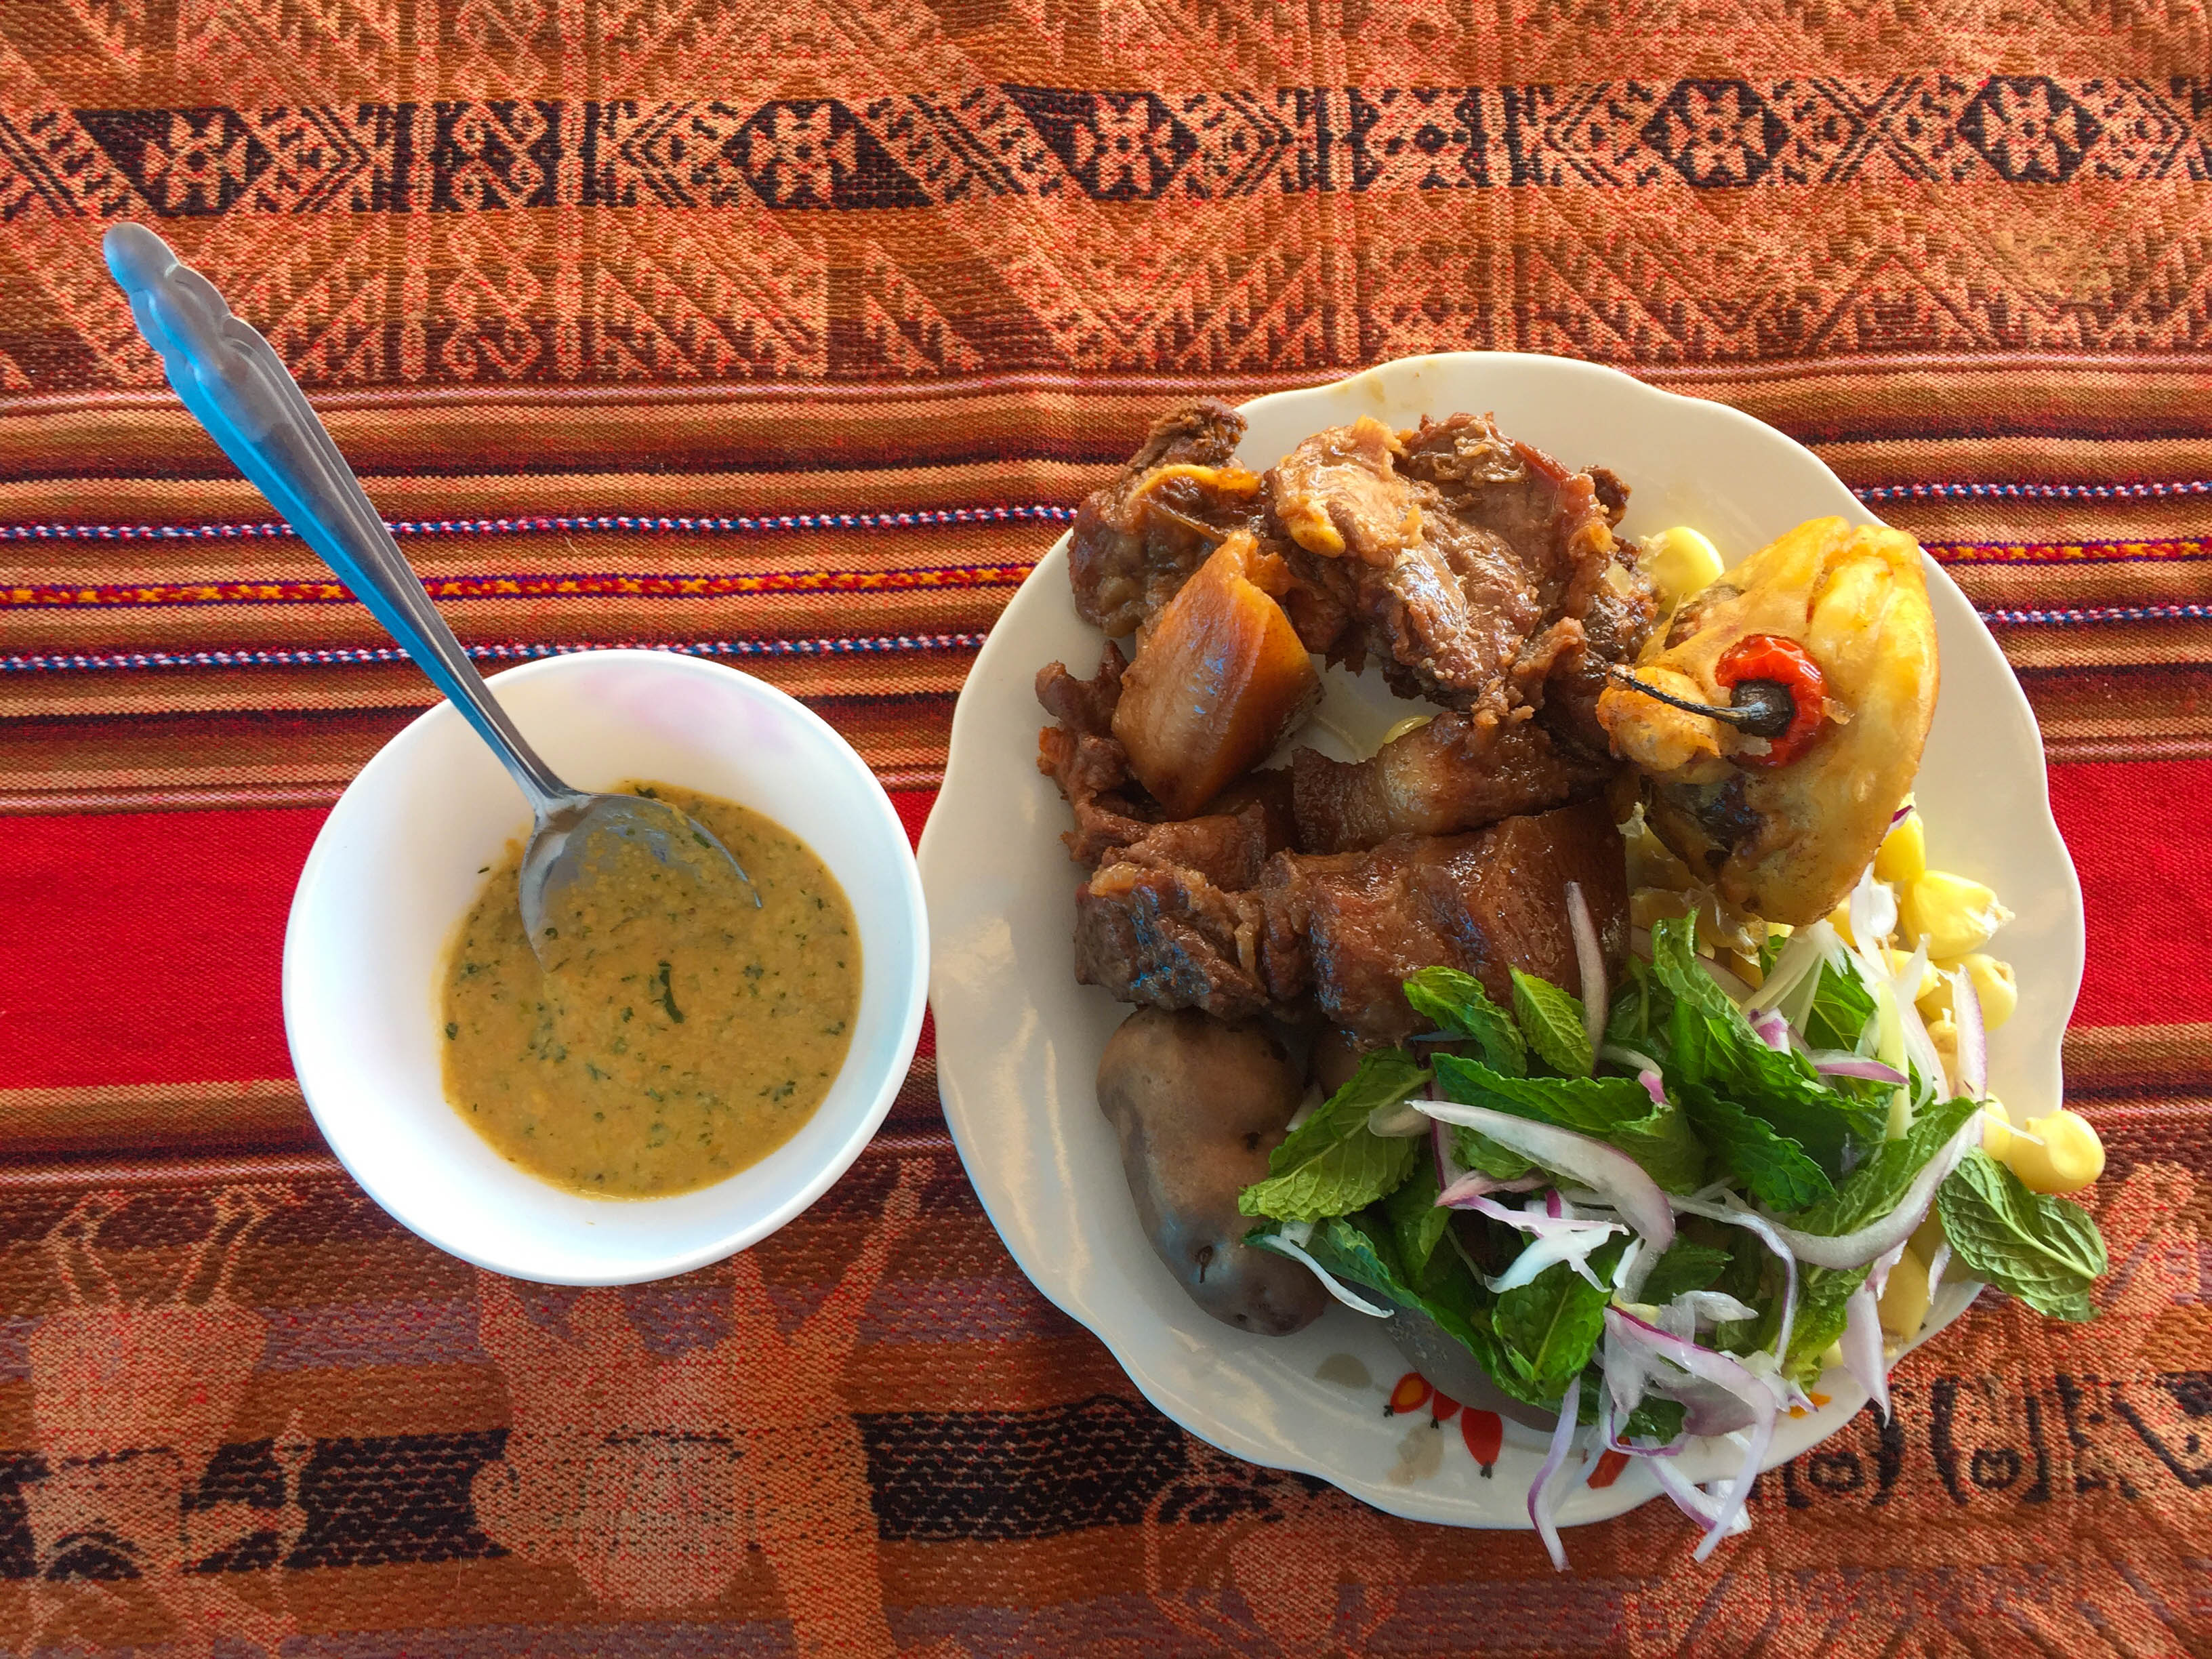 Mancachicharro, a tradicional dish from Chinchero, Sacred Valley (Photo: Walter Coraza Morveli)